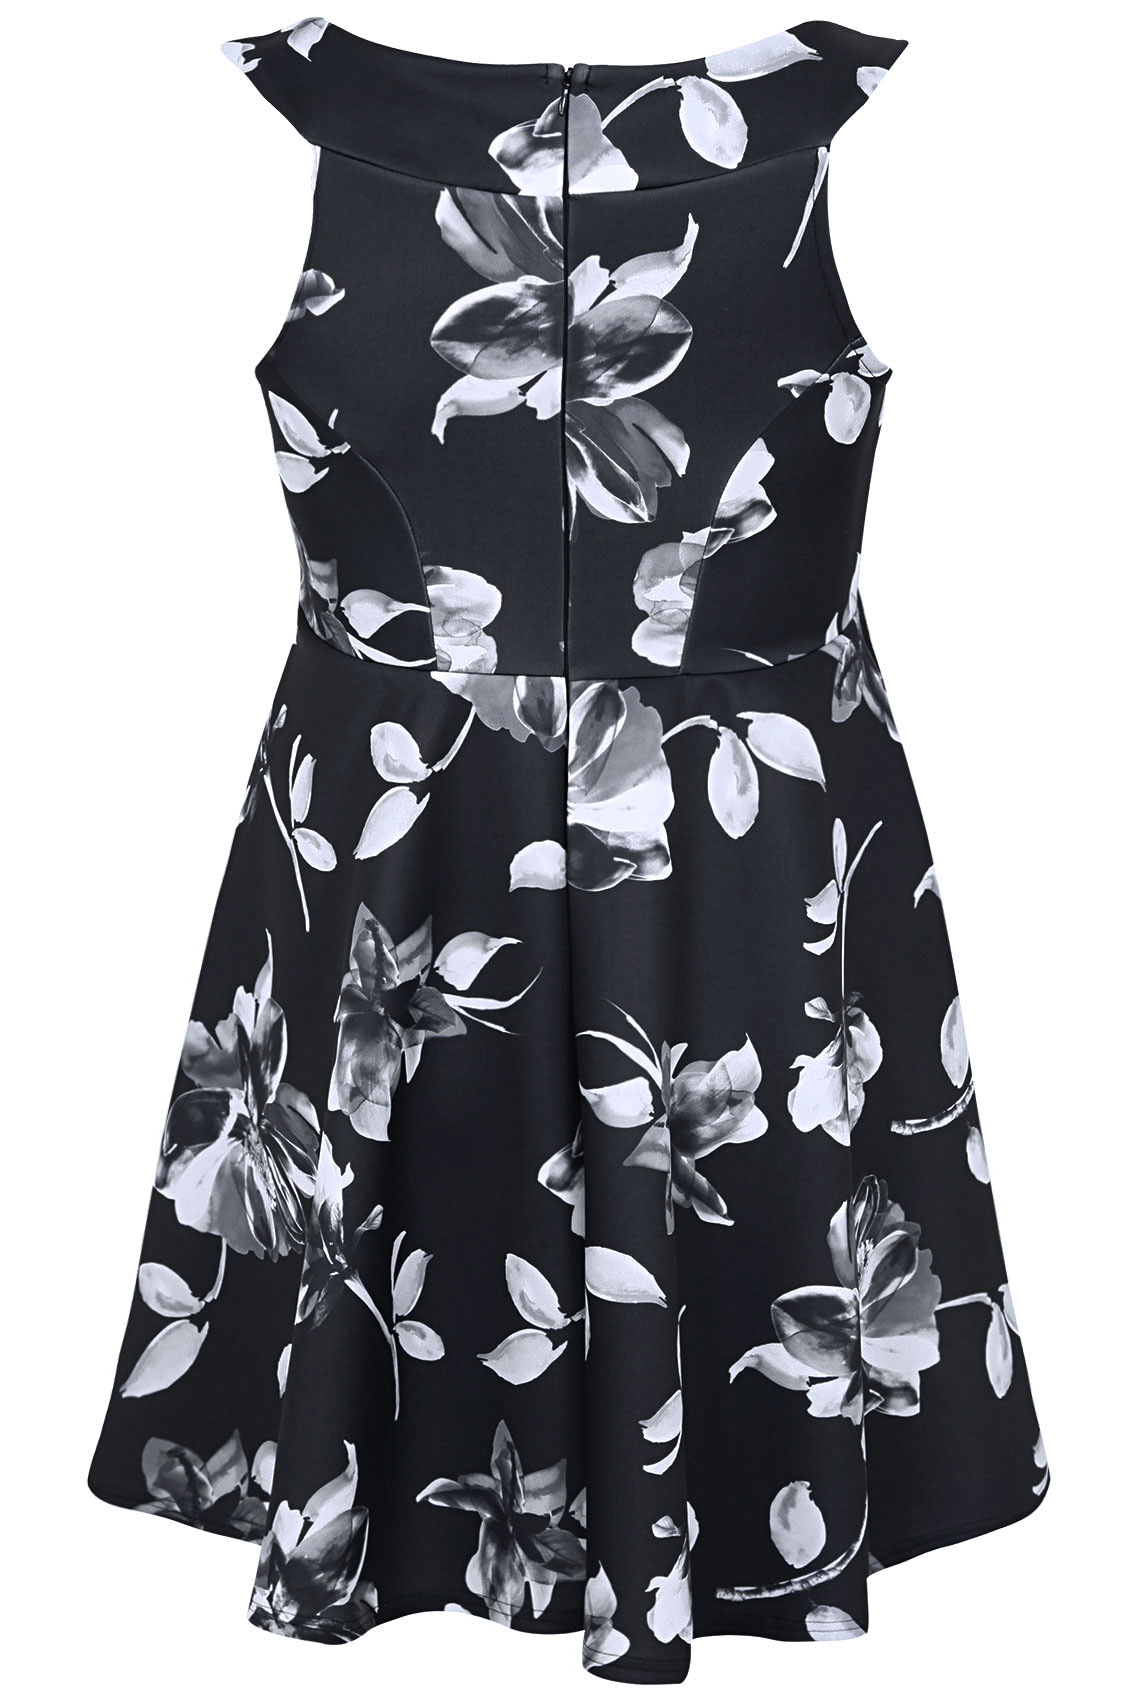 Get Autumn ready with a geometric skater dress, or knock em dead in a stylish pencil dress. Autum, winter here you come! Products Filter. Category. Skater Dresses Shift Dresses Grey Window Check Skater Dress. £ Quick View Black Ditsy Lace Skater Dress. £ Quick View.